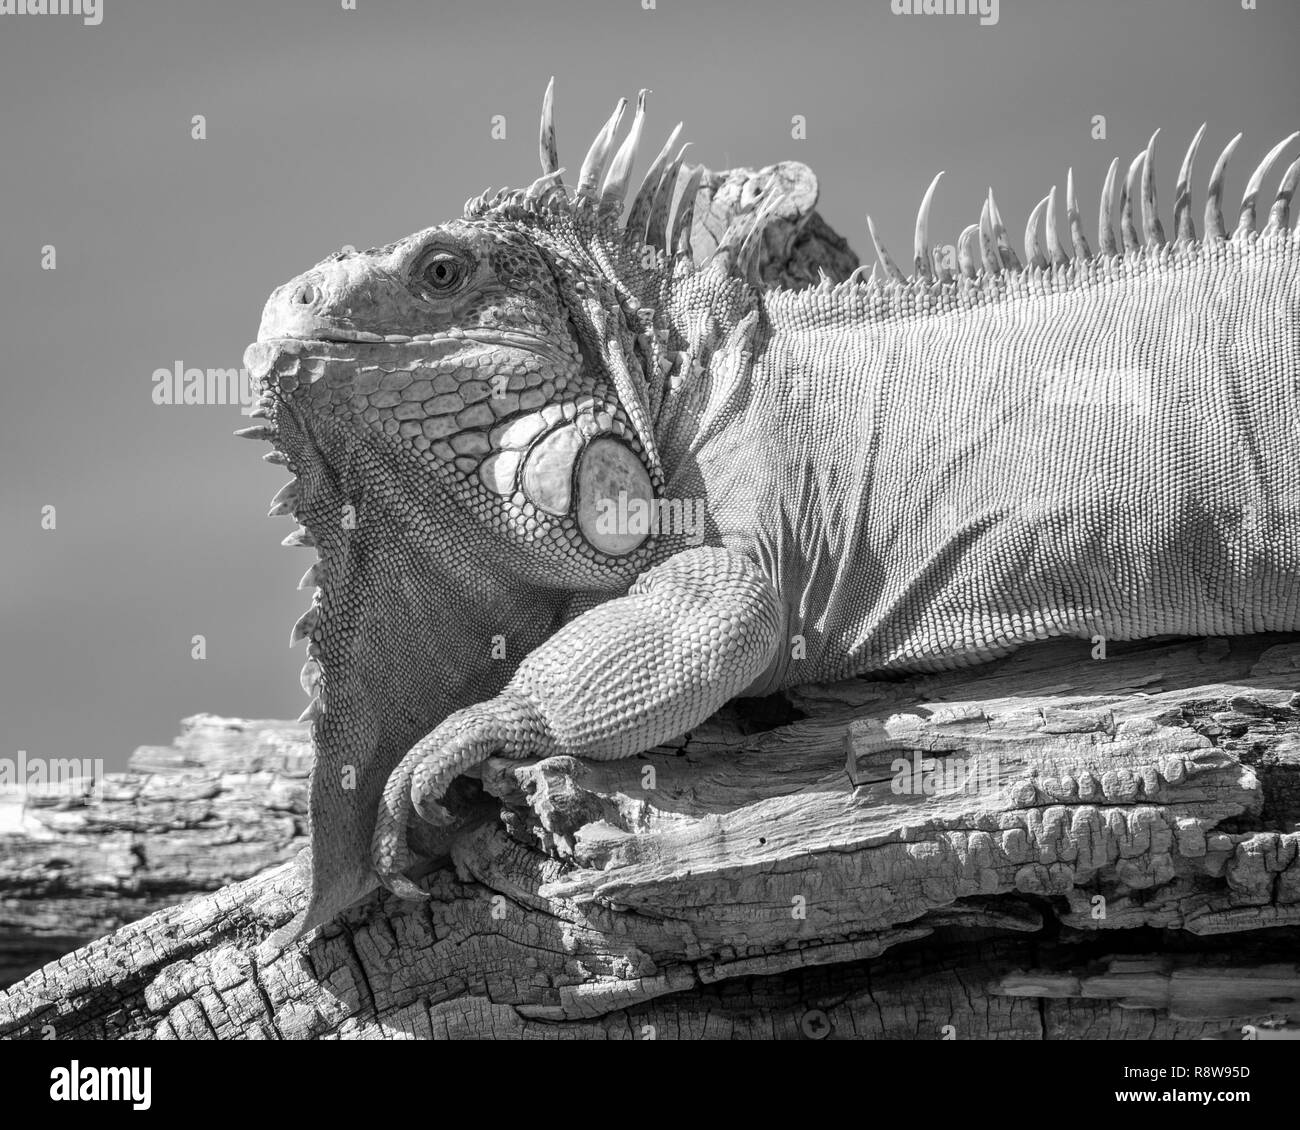 Iguana Perched on a Branch, Black and White - Stock Image